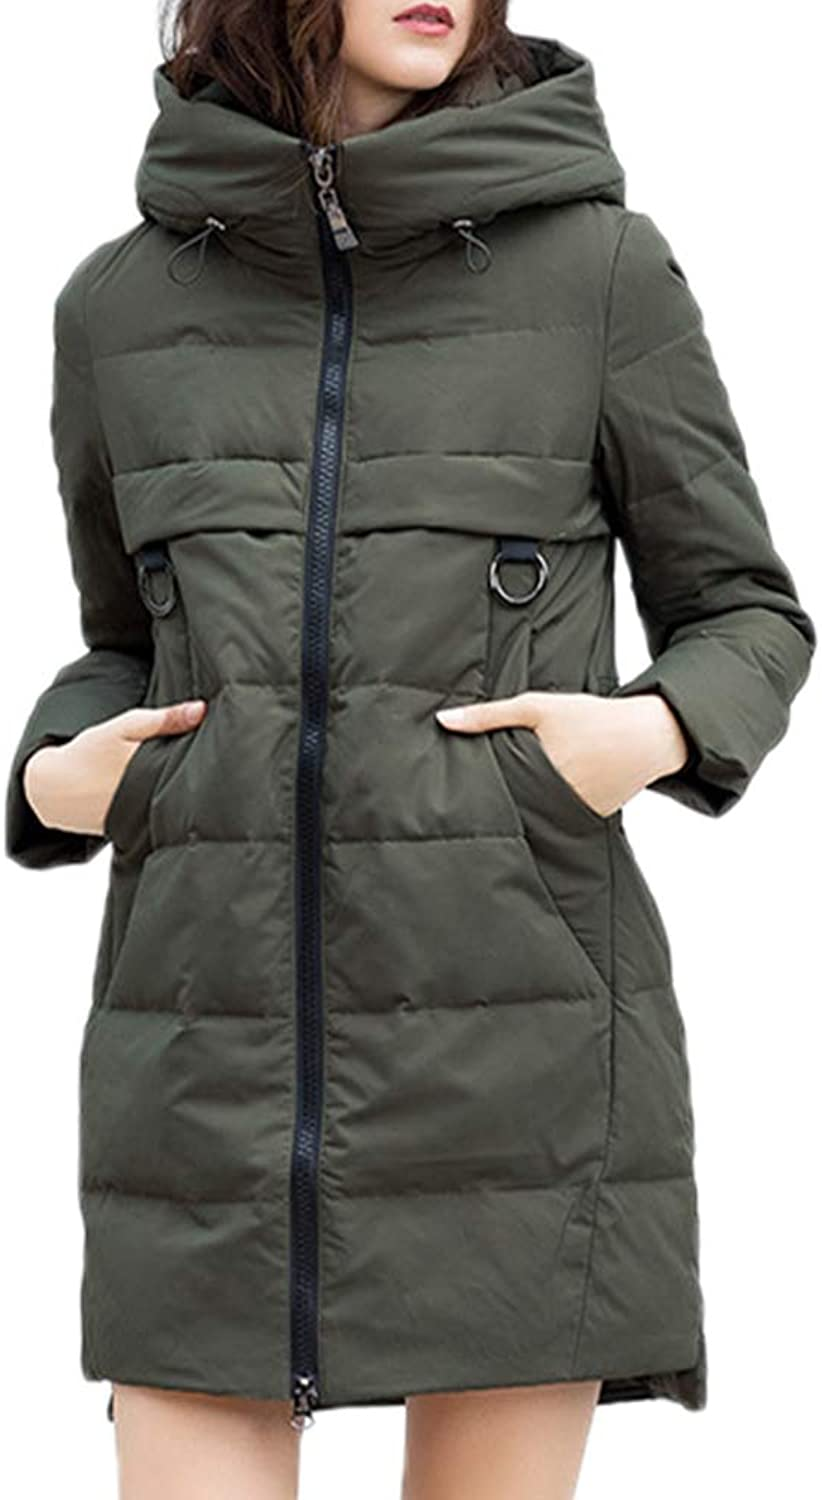 Zenicham Women Thicken Winter Coat Hood Long Pure color Jacket Outwear